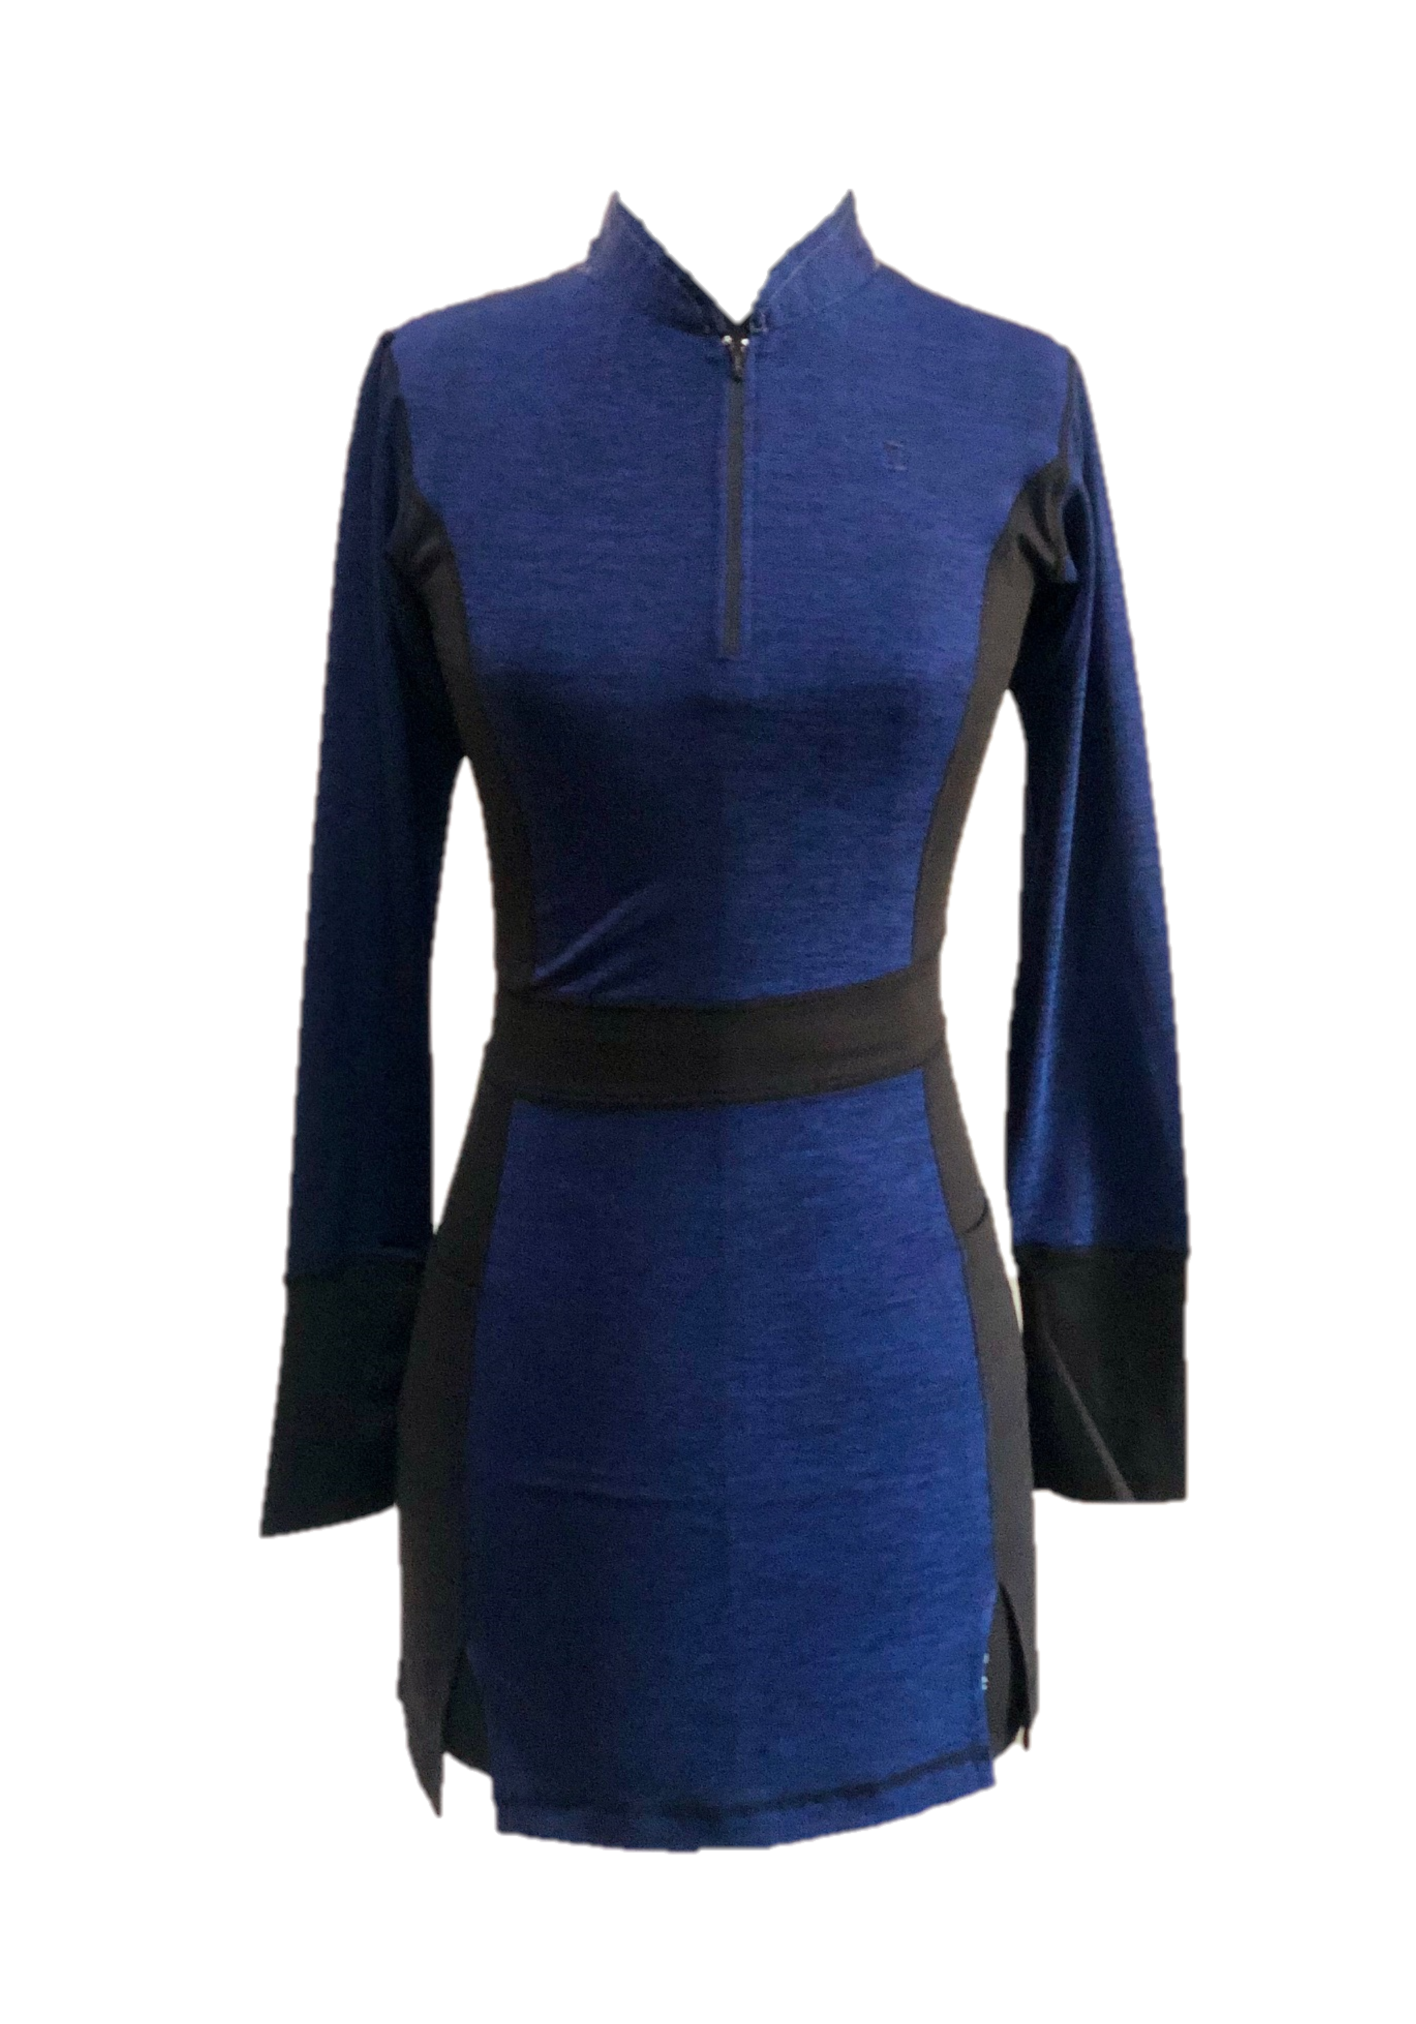 GD-016    Golf Dress Long Sleeved Navy Blue With Black Half Belted Waist Cuffs Underarm Side Panels Zippered Mandarin Type Collar With Peaked Back  Section